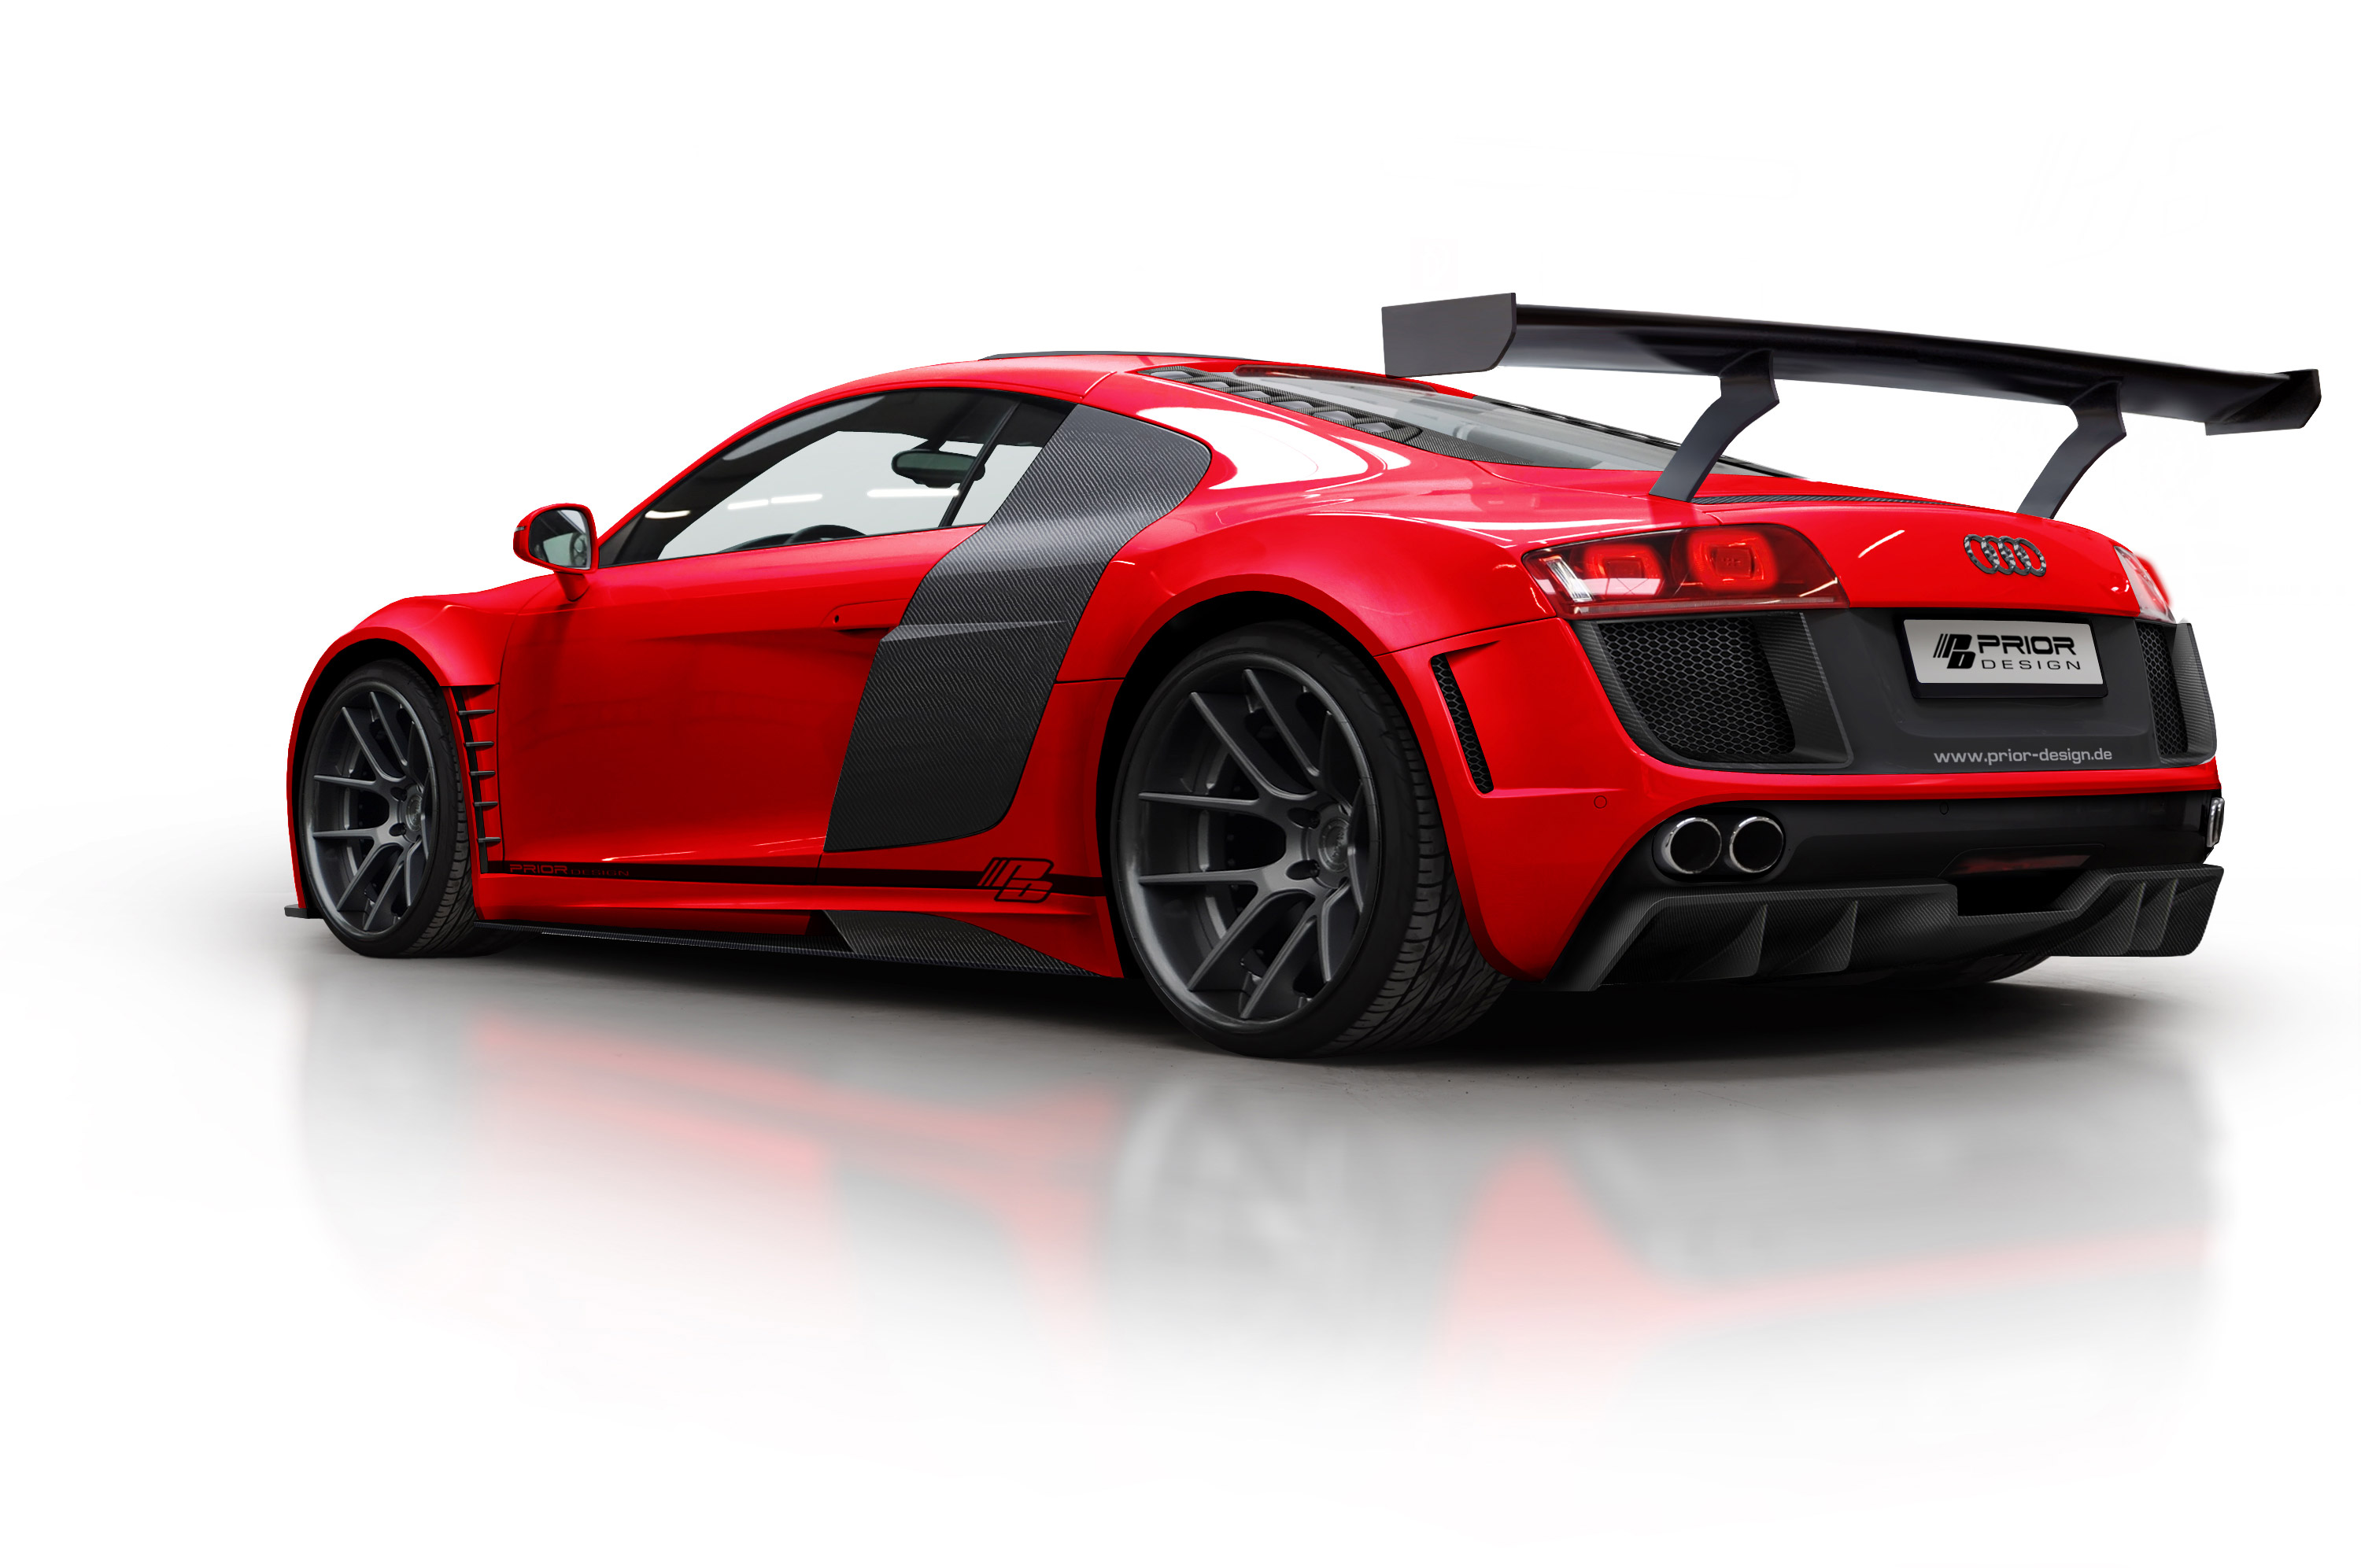 3000x1993 > Audi R8 GT 850 Wallpapers